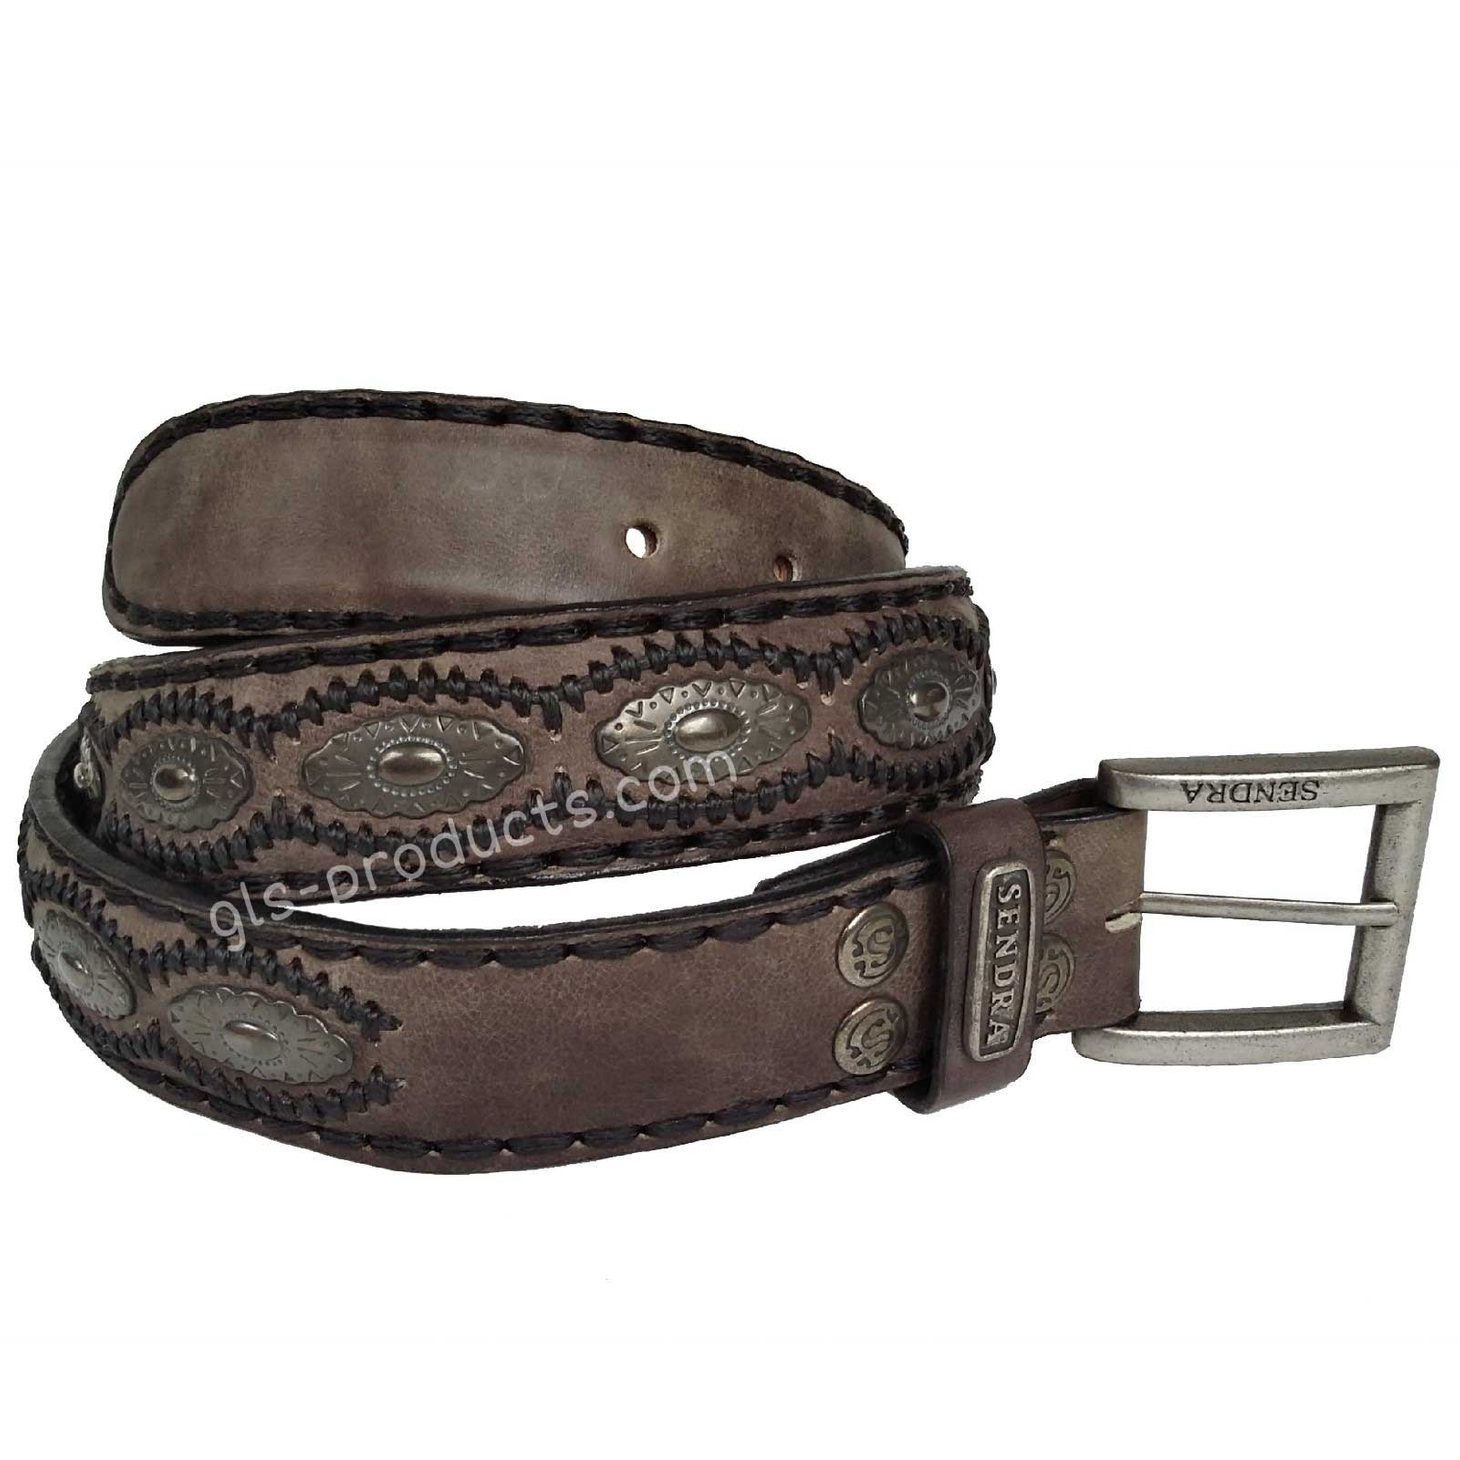 Sendra Leather Belt 7606-OL